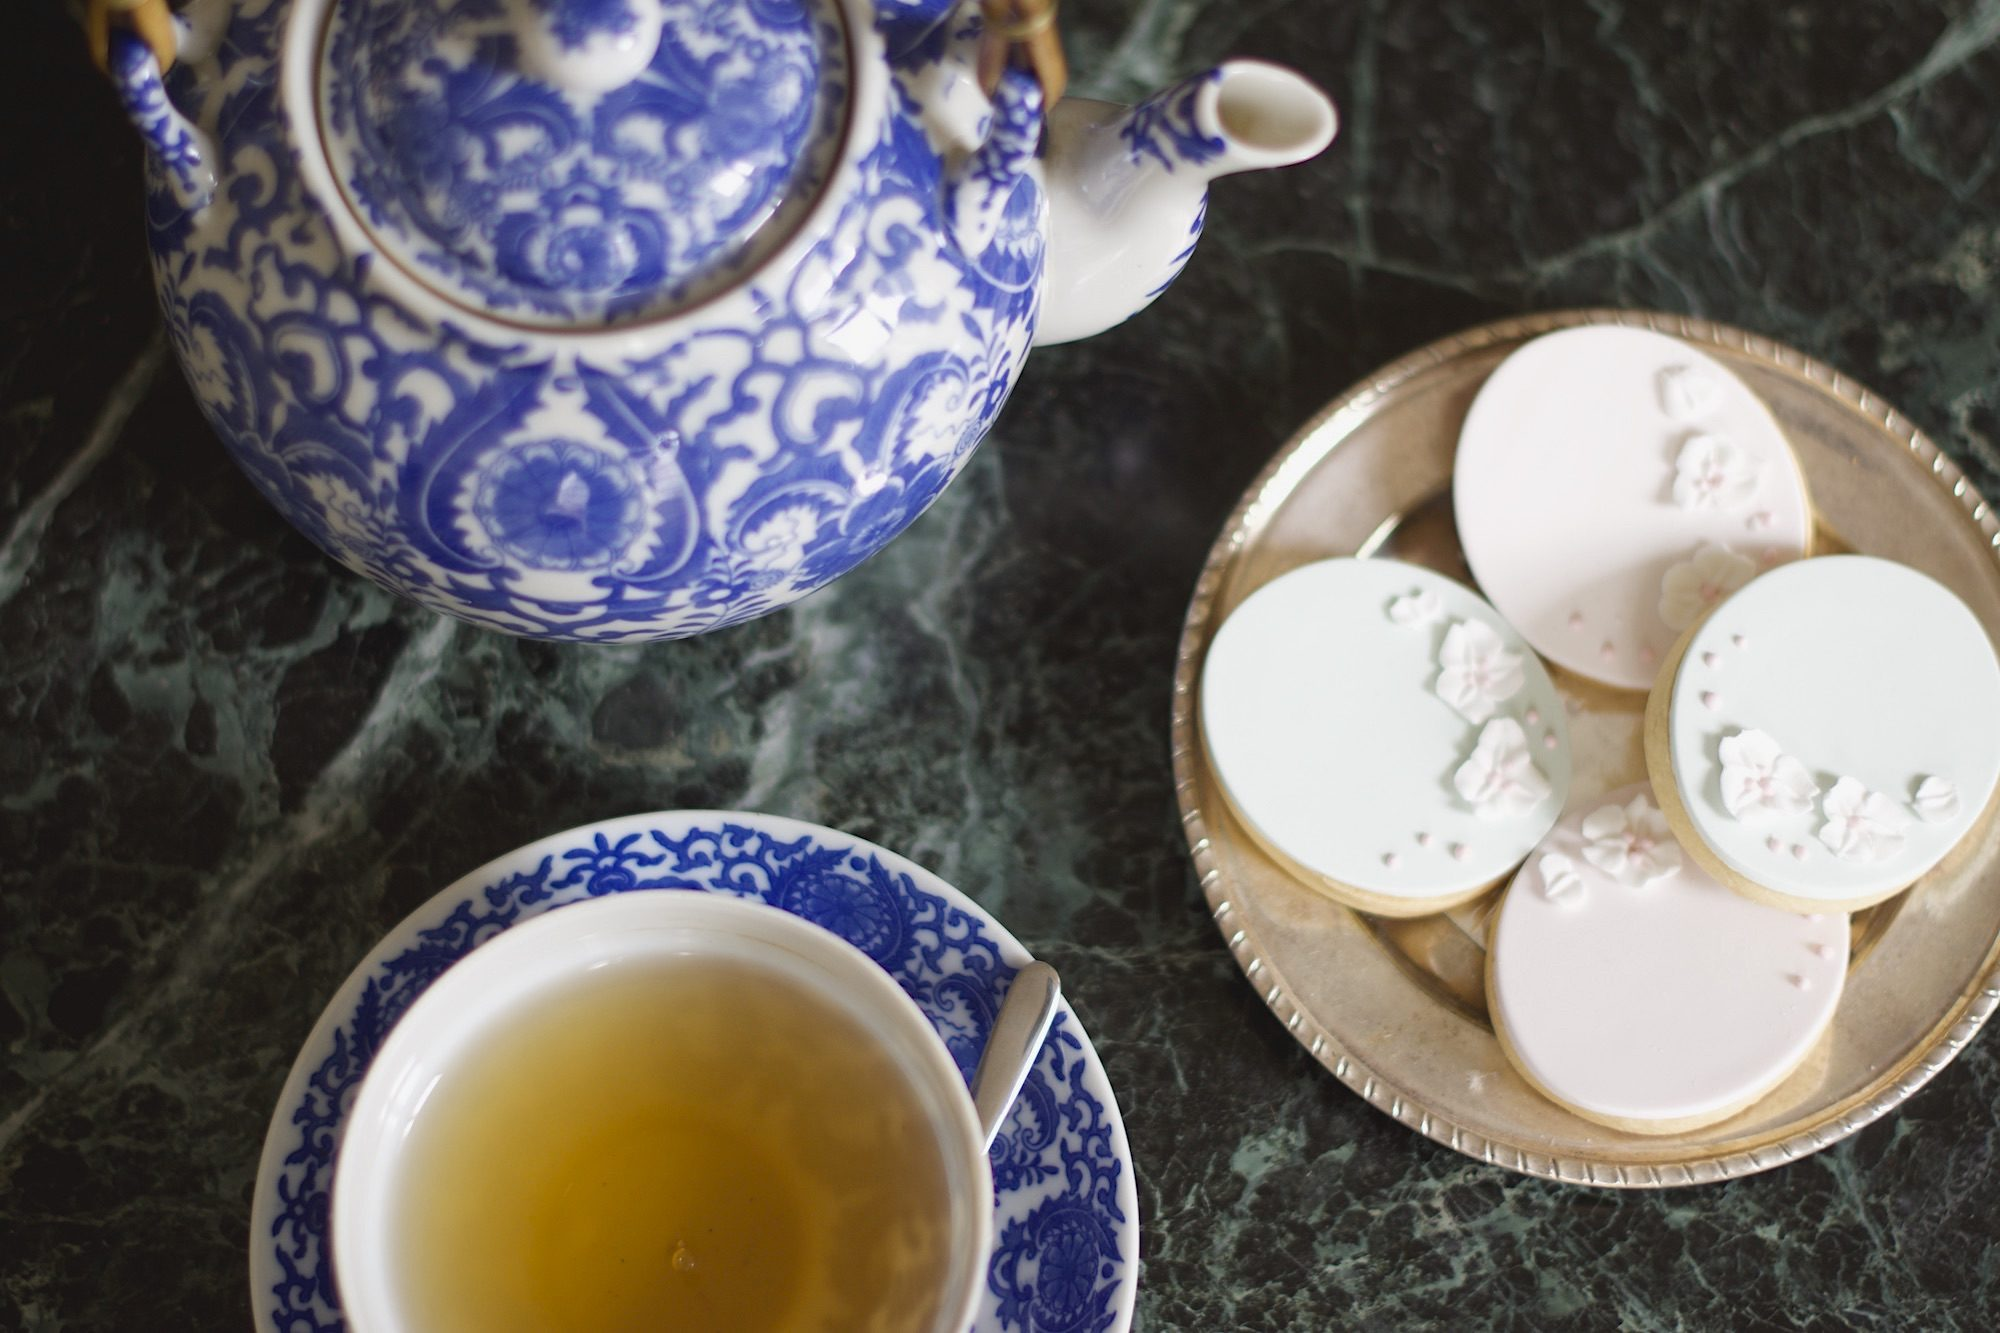 A top shot of a blue and white China teapot and cup with biscuits baked by Frank set on a green marble counter.